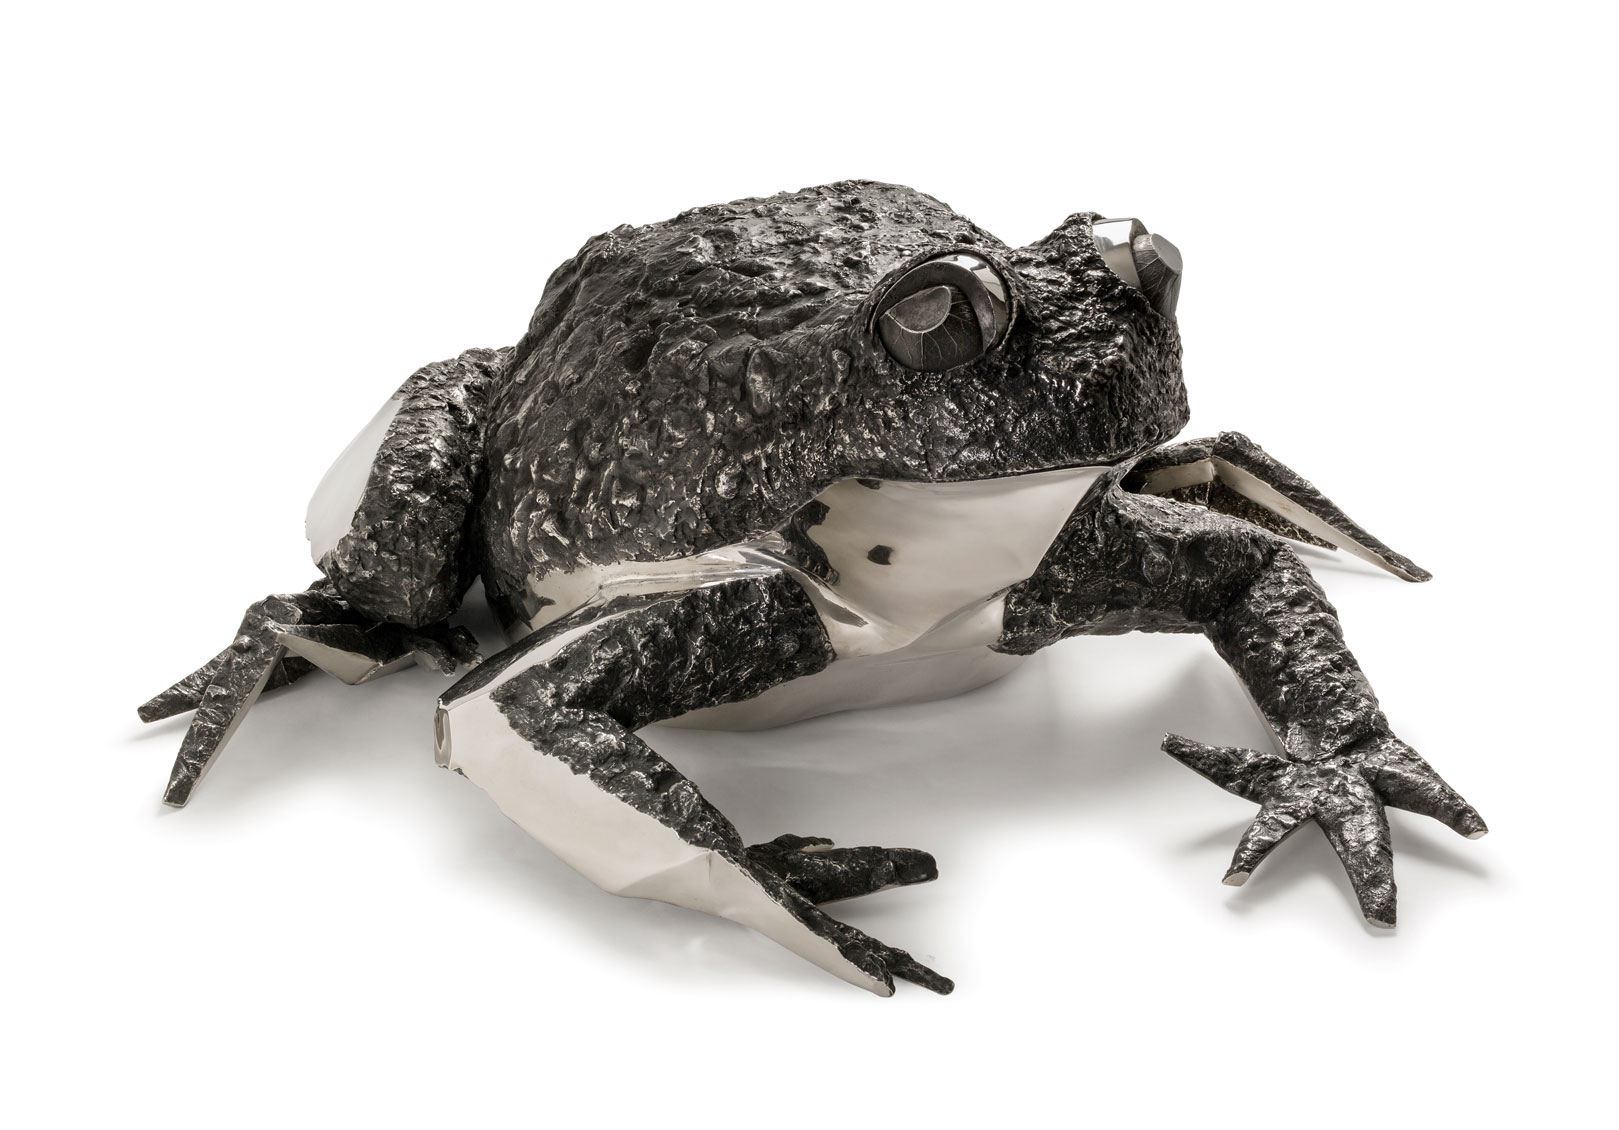 Katherine Taylor. FROGS projet, detail. Stainless steel. Alfa Arte